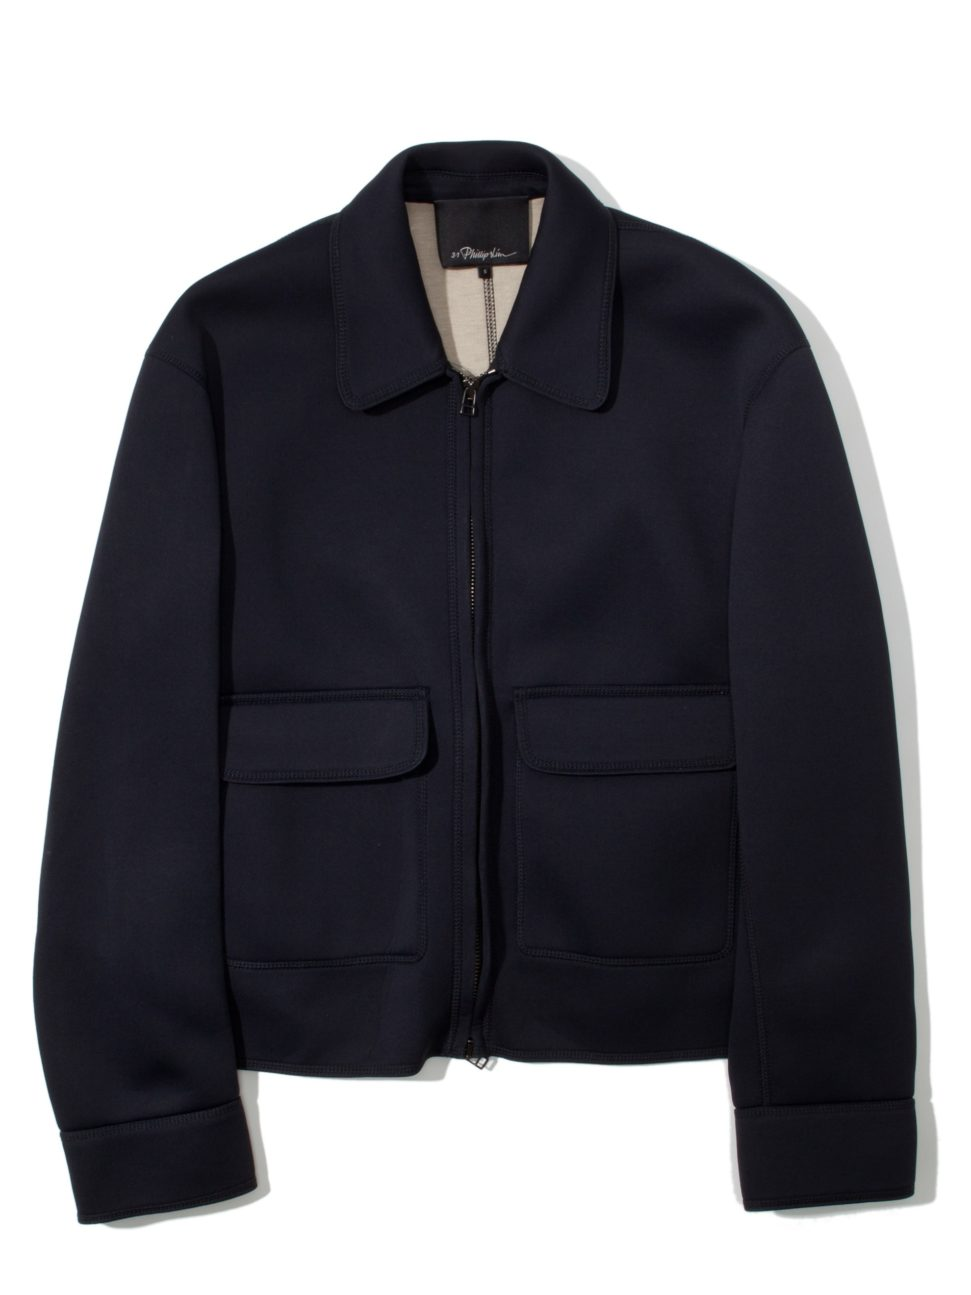 3.1 Phillip Lim Coverstitch Box Cut Jacket